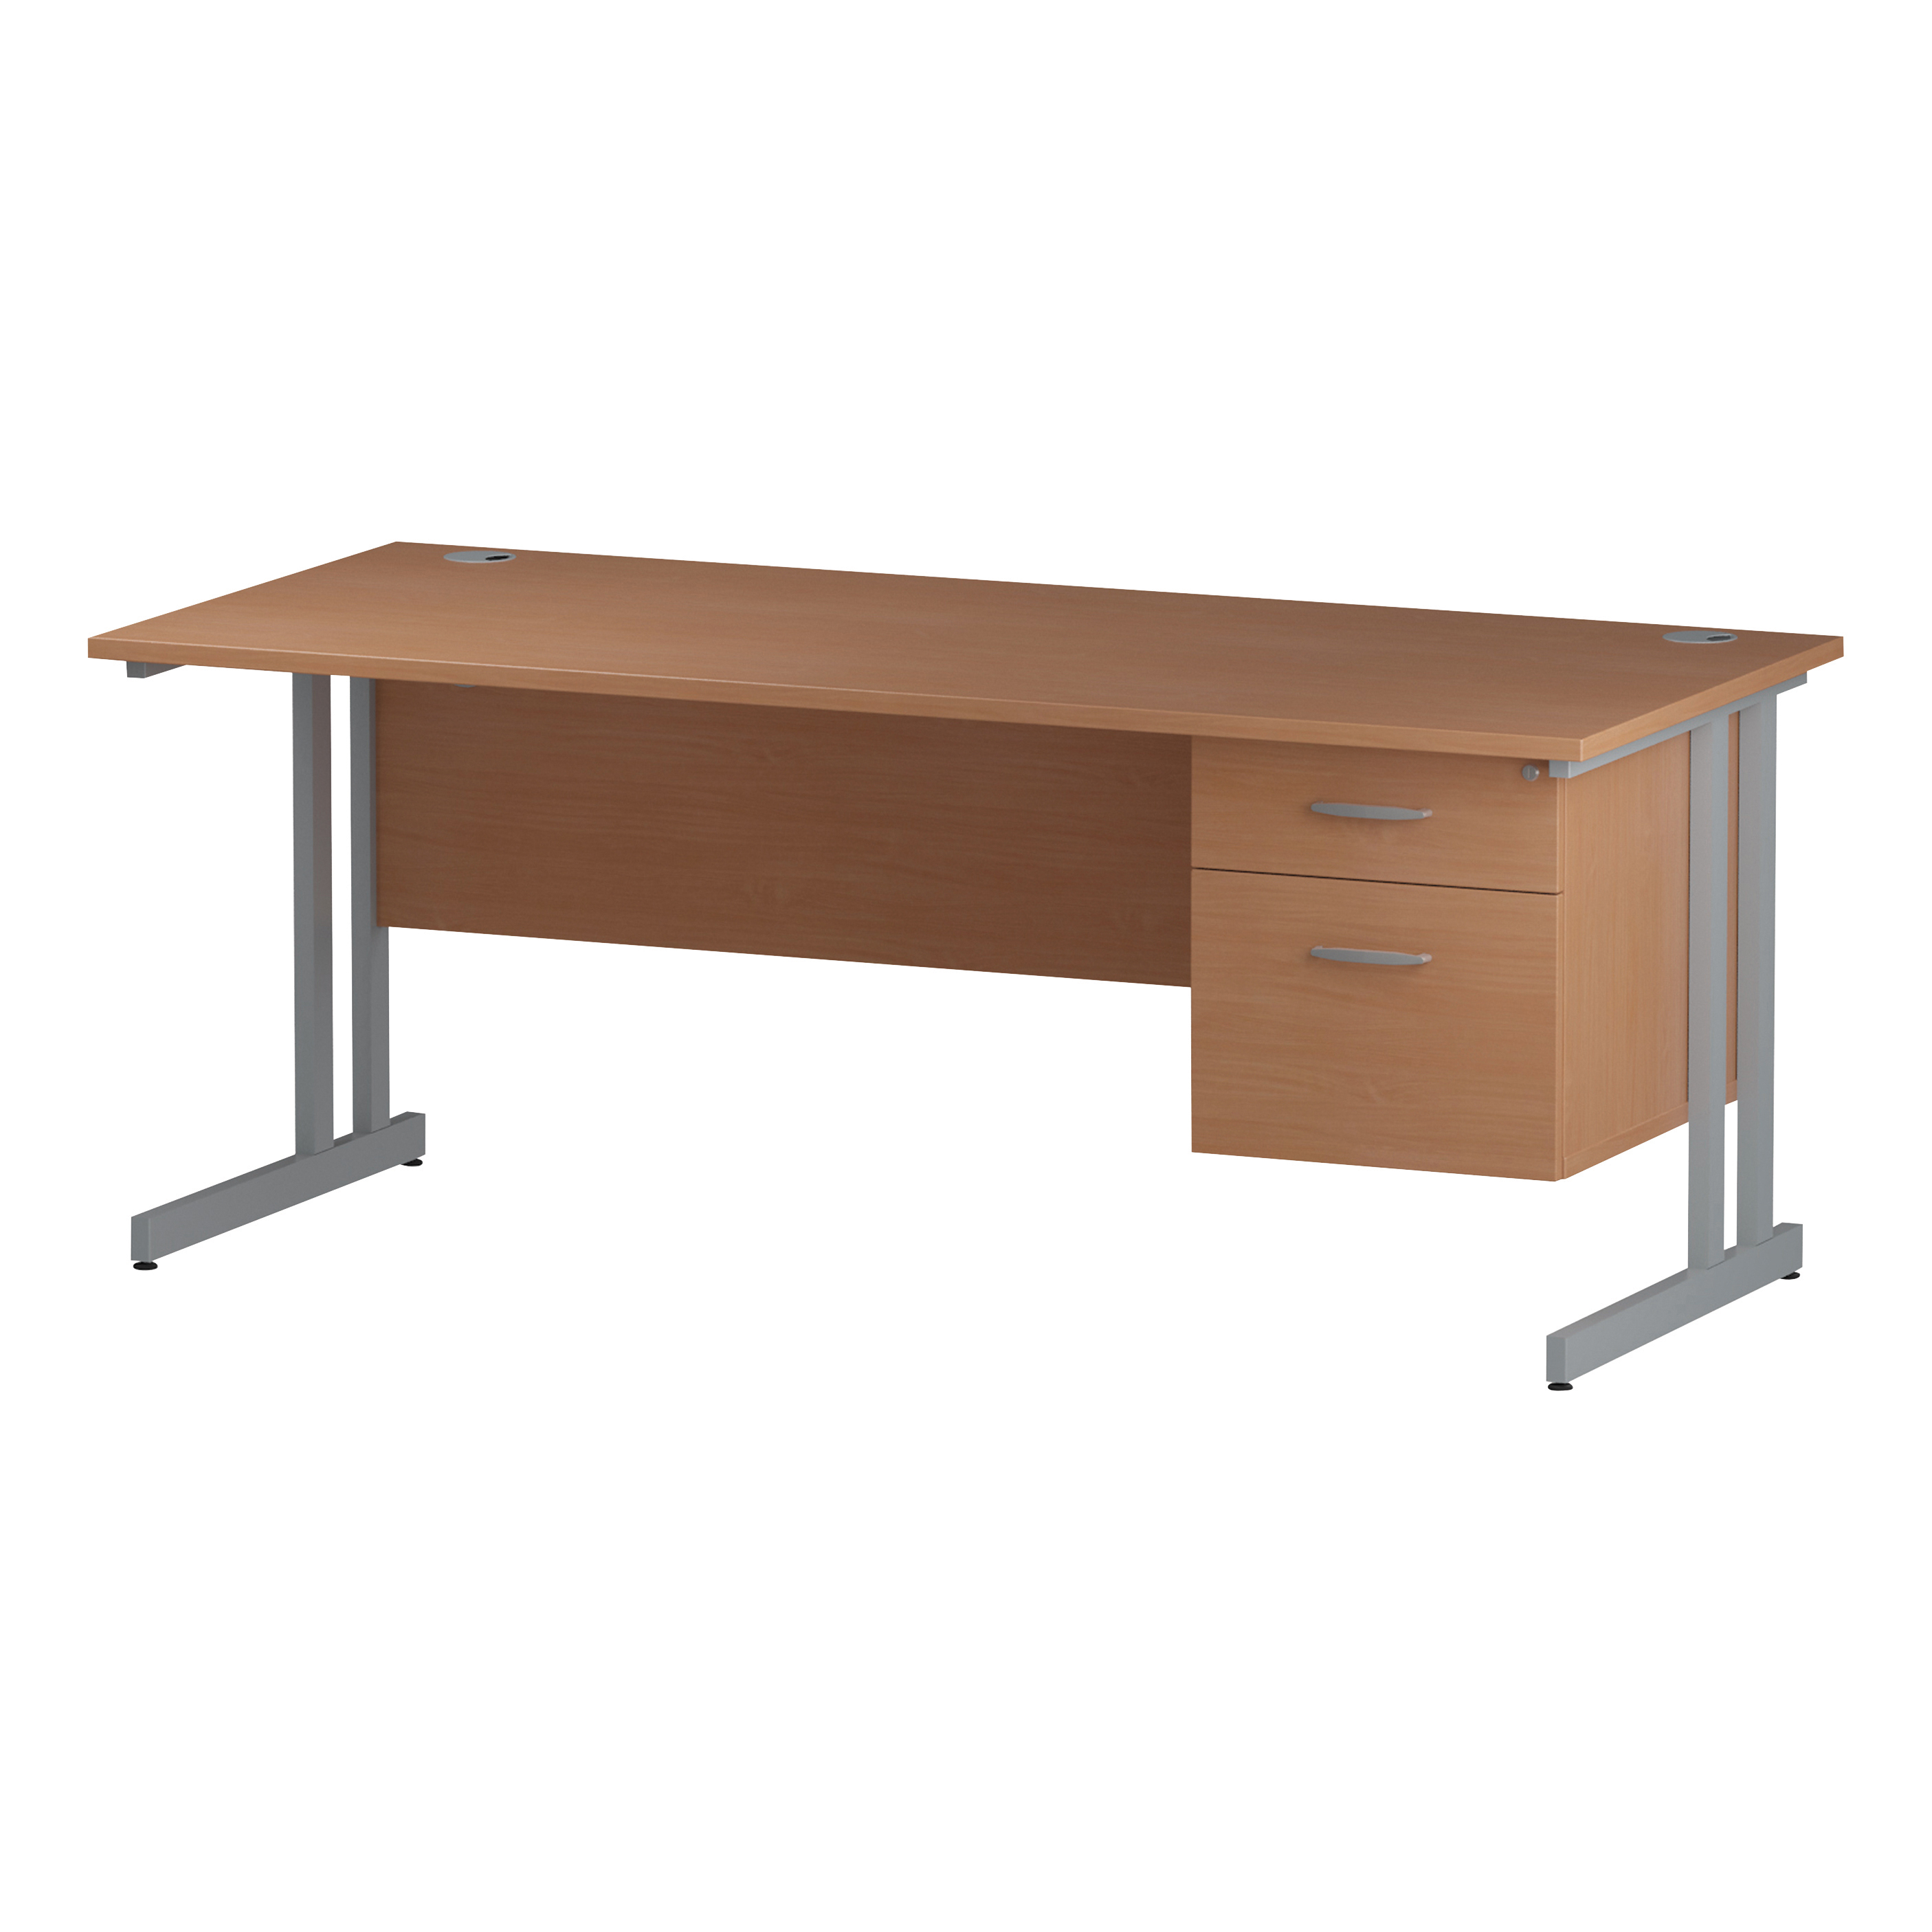 Trexus Rectangular Desk Silver Cantilever Leg 1800x800mm Fixed Pedestal 2 Drawers Beech Ref I001691